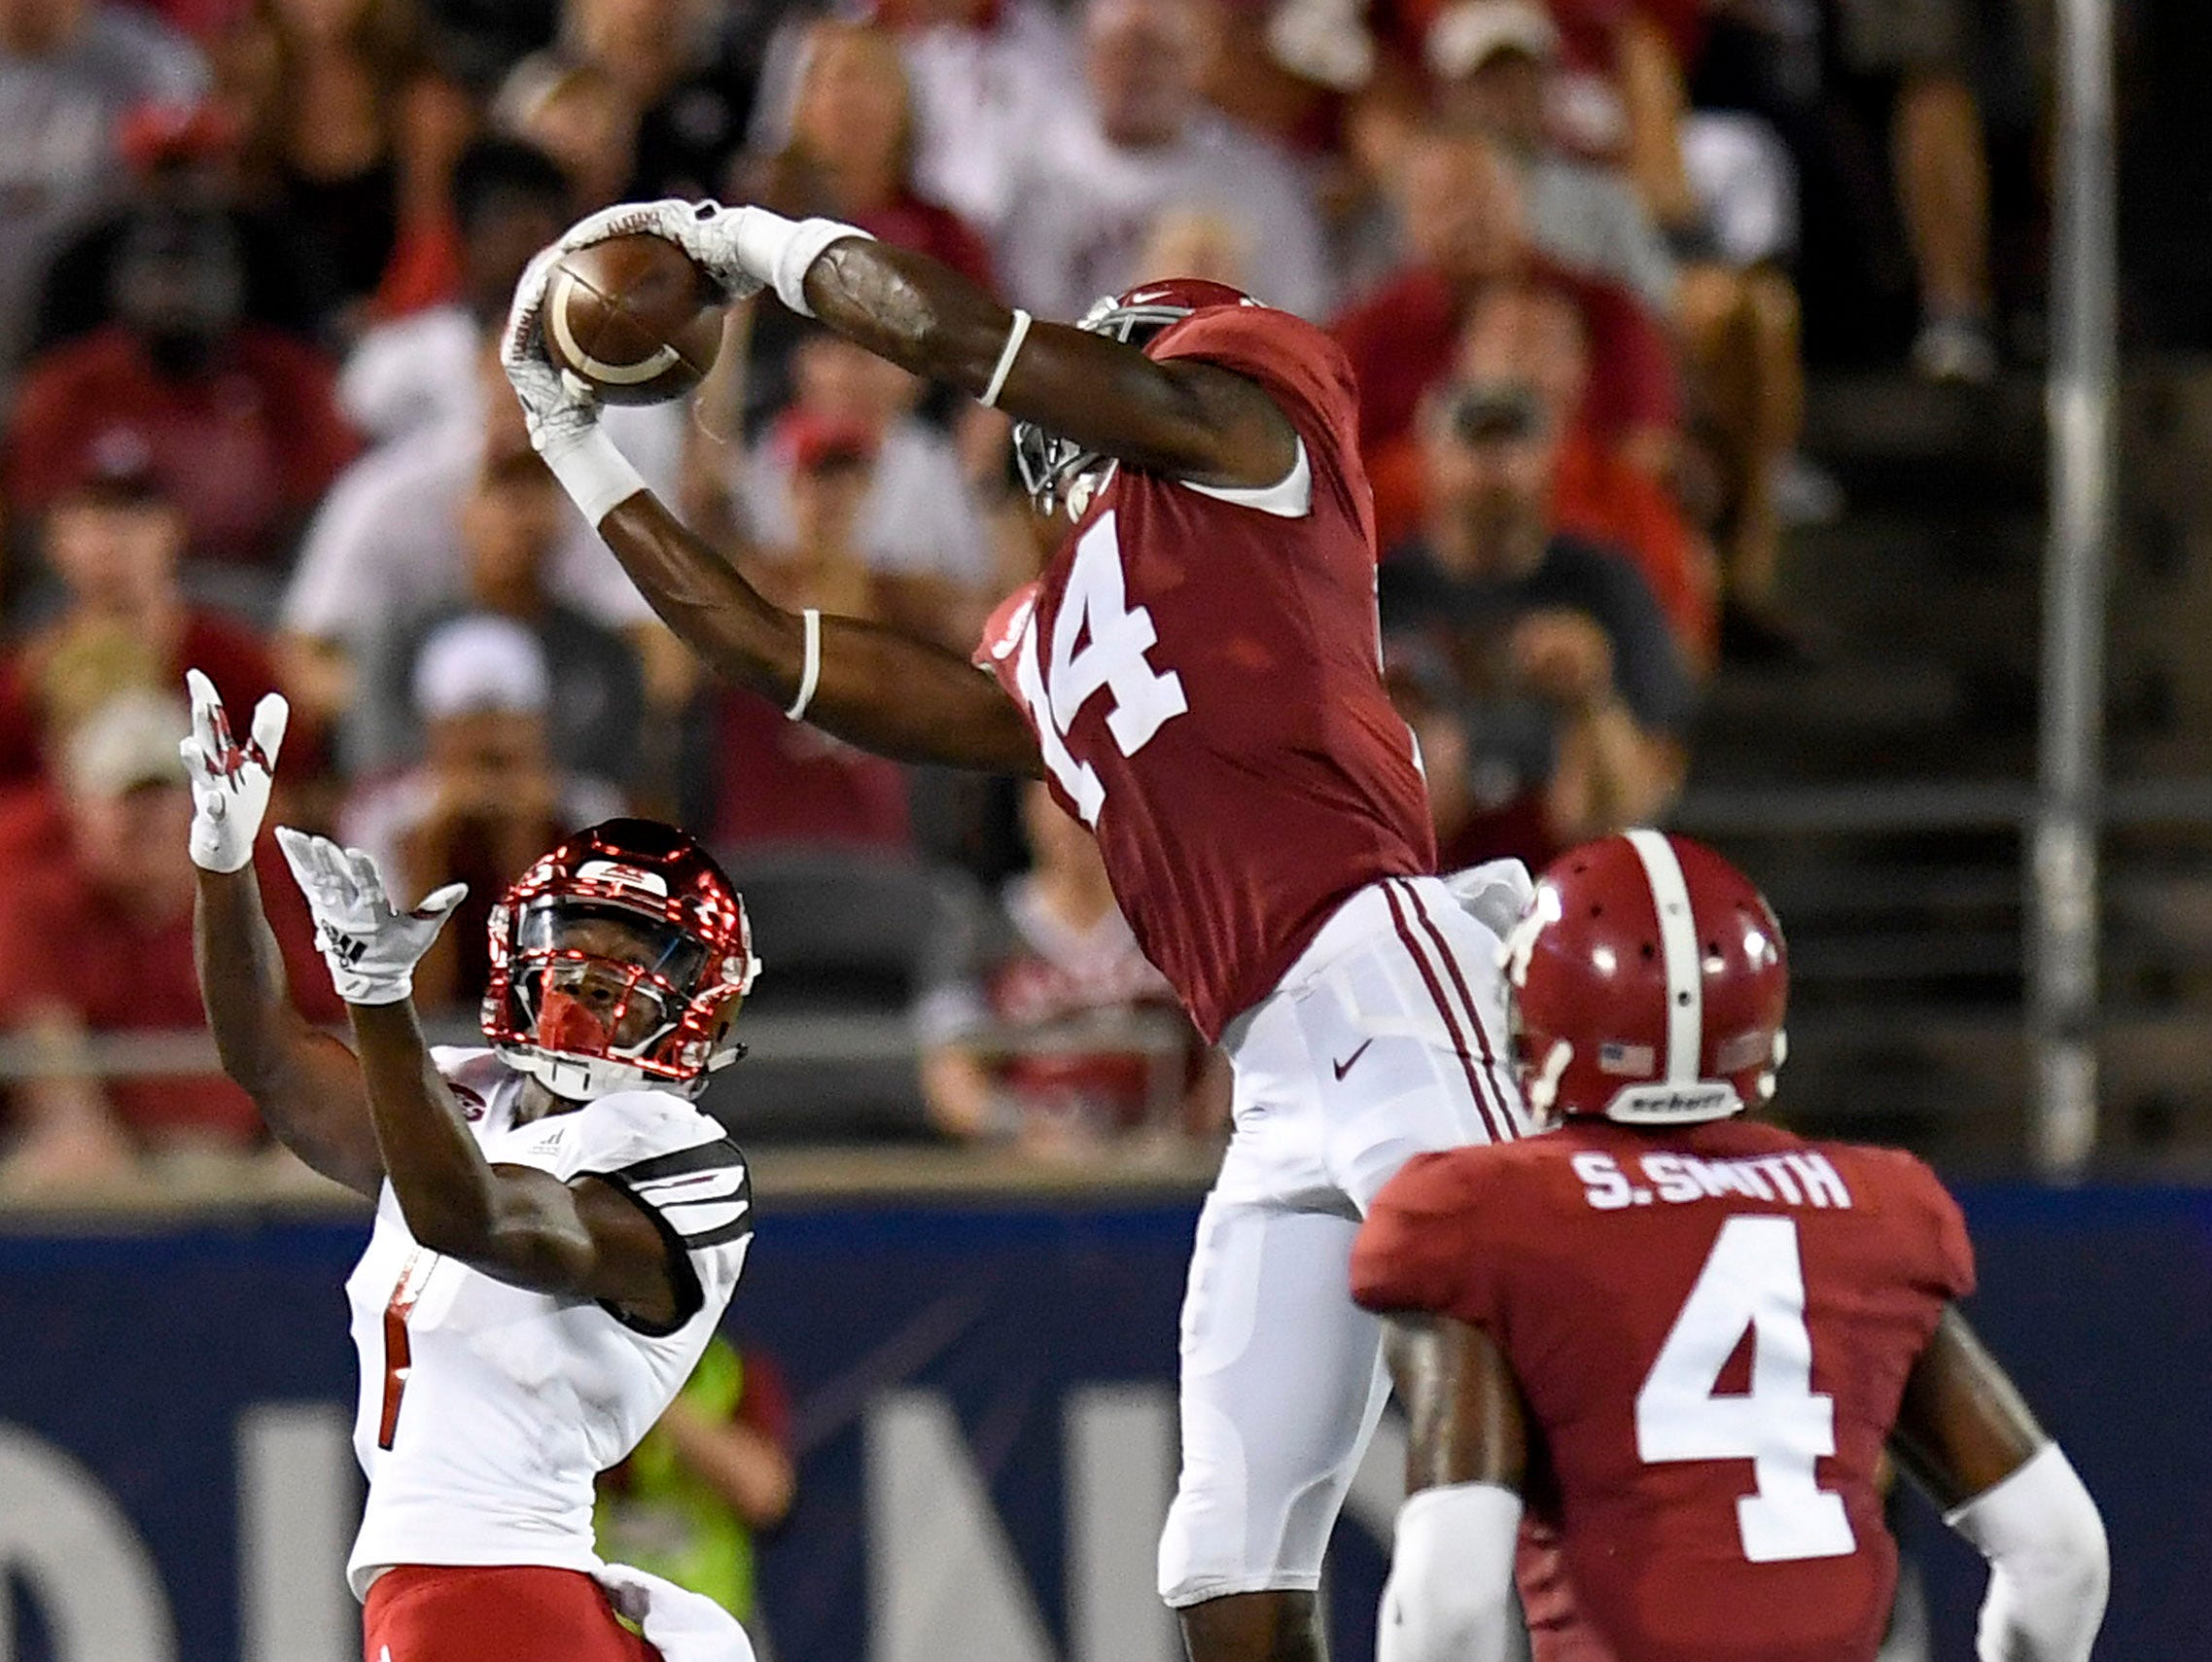 Alabama defensive back Deionte Thompson (14) intercepts a ball out of bounds against Louisville In first half action of the Camping World Kickoff at Camping World Stadium in Orlando, Fla., on Saturday September 1, 2018.